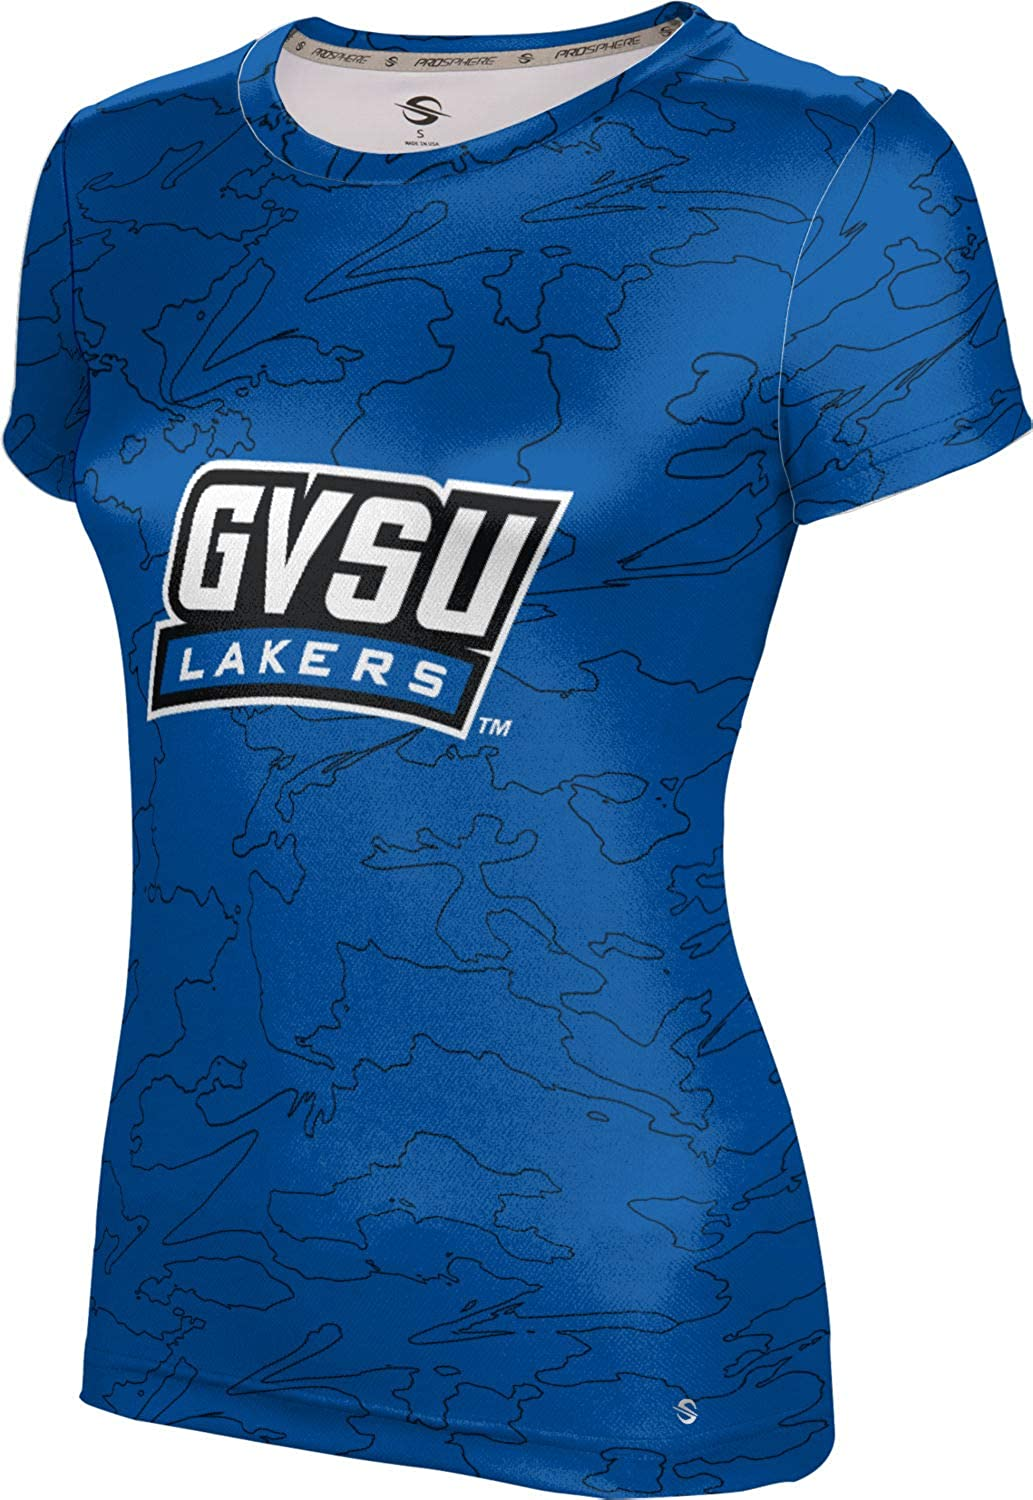 ProSphere Grand Valley State University Girls' Performance T-Shirt (Topography)